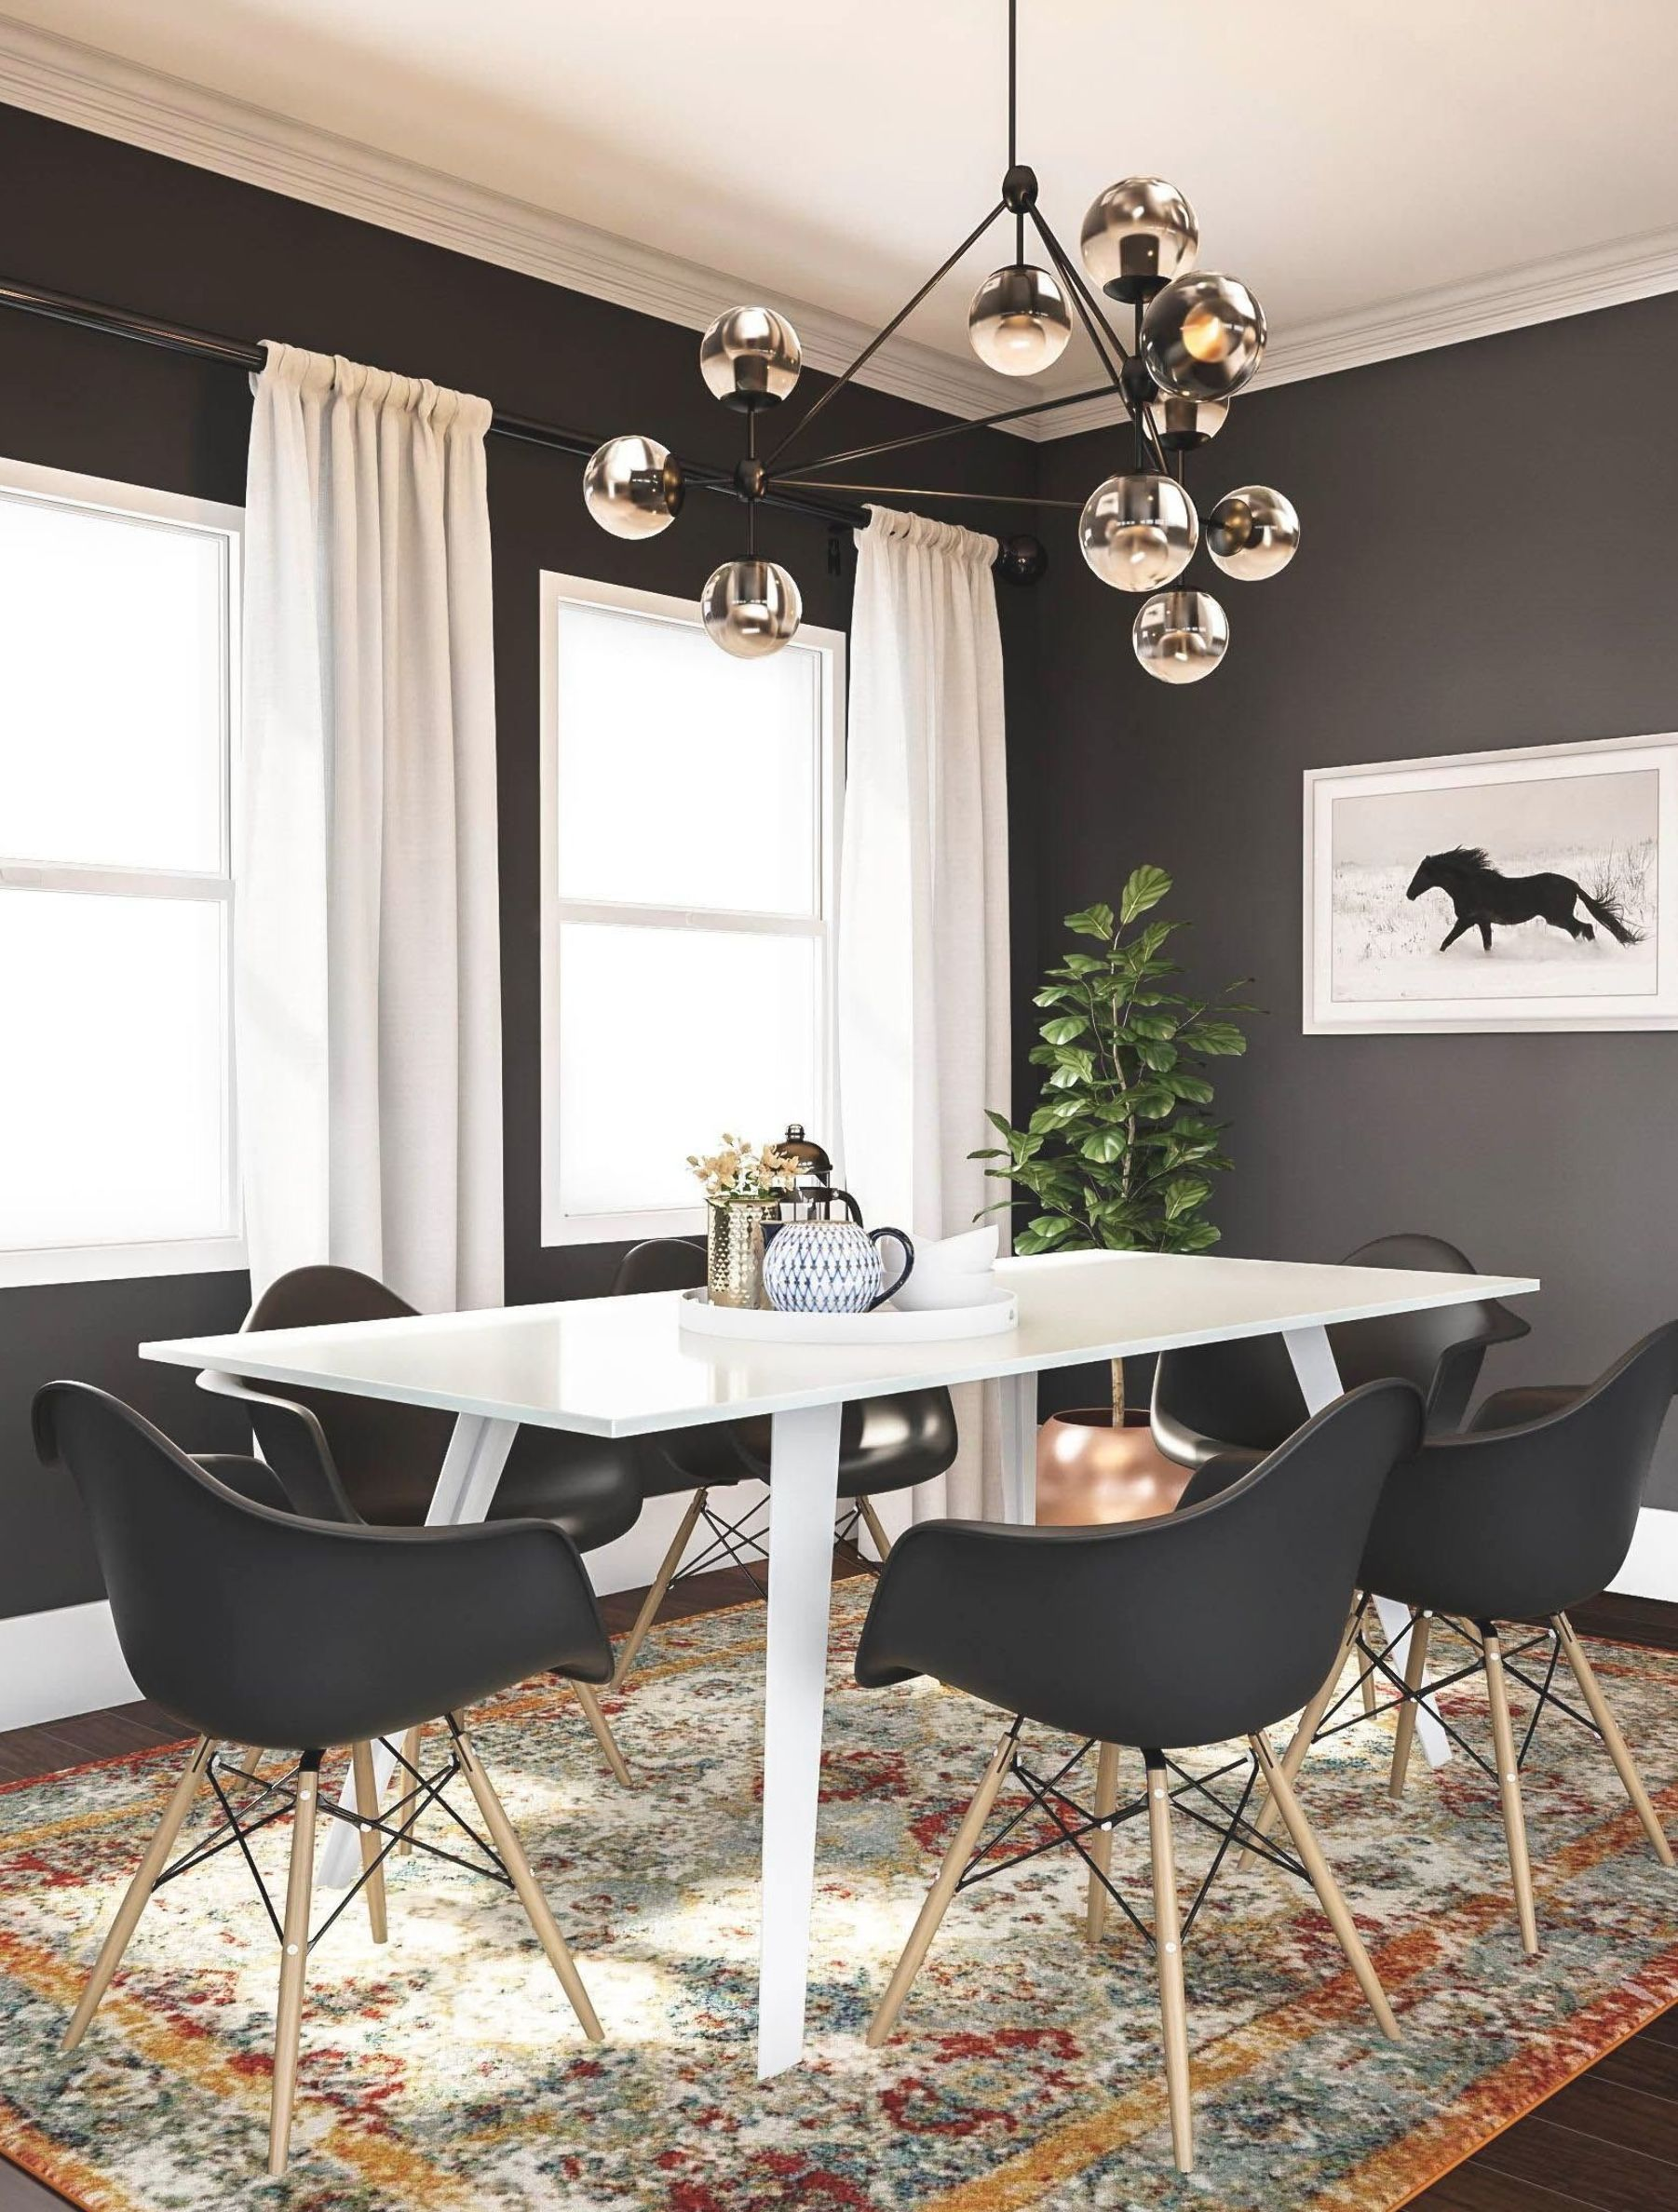 Graceful Houzz Dining Room Rug Ideas That Look Beautiful Dark Dining Room Black And White Dining Room Black Dining Room Beautiful dining rooms houzz